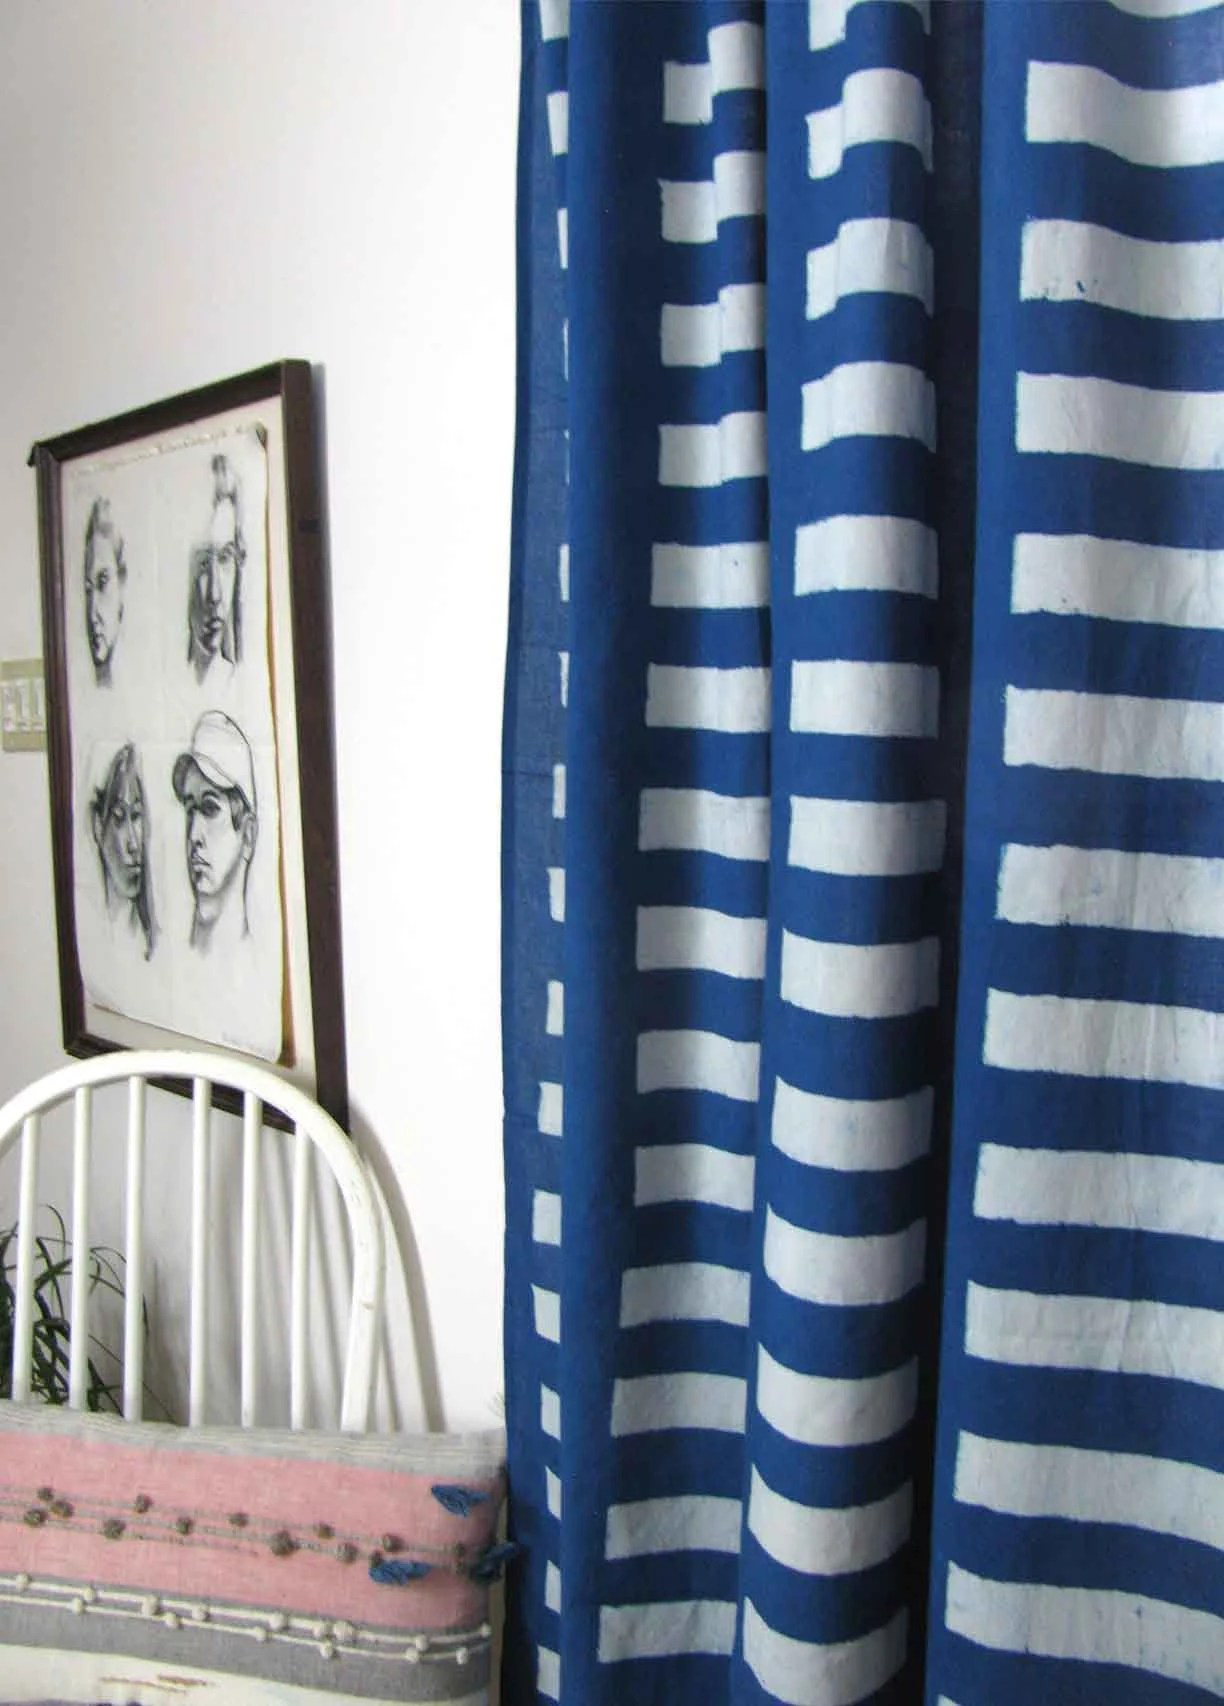 Bedroom Curtains Sale Navy Blue Curtains Panels Window Treatments Sample Sale Window Curtains Bedroom Modern Home Decor Block Print Ichcha One Panel Streets